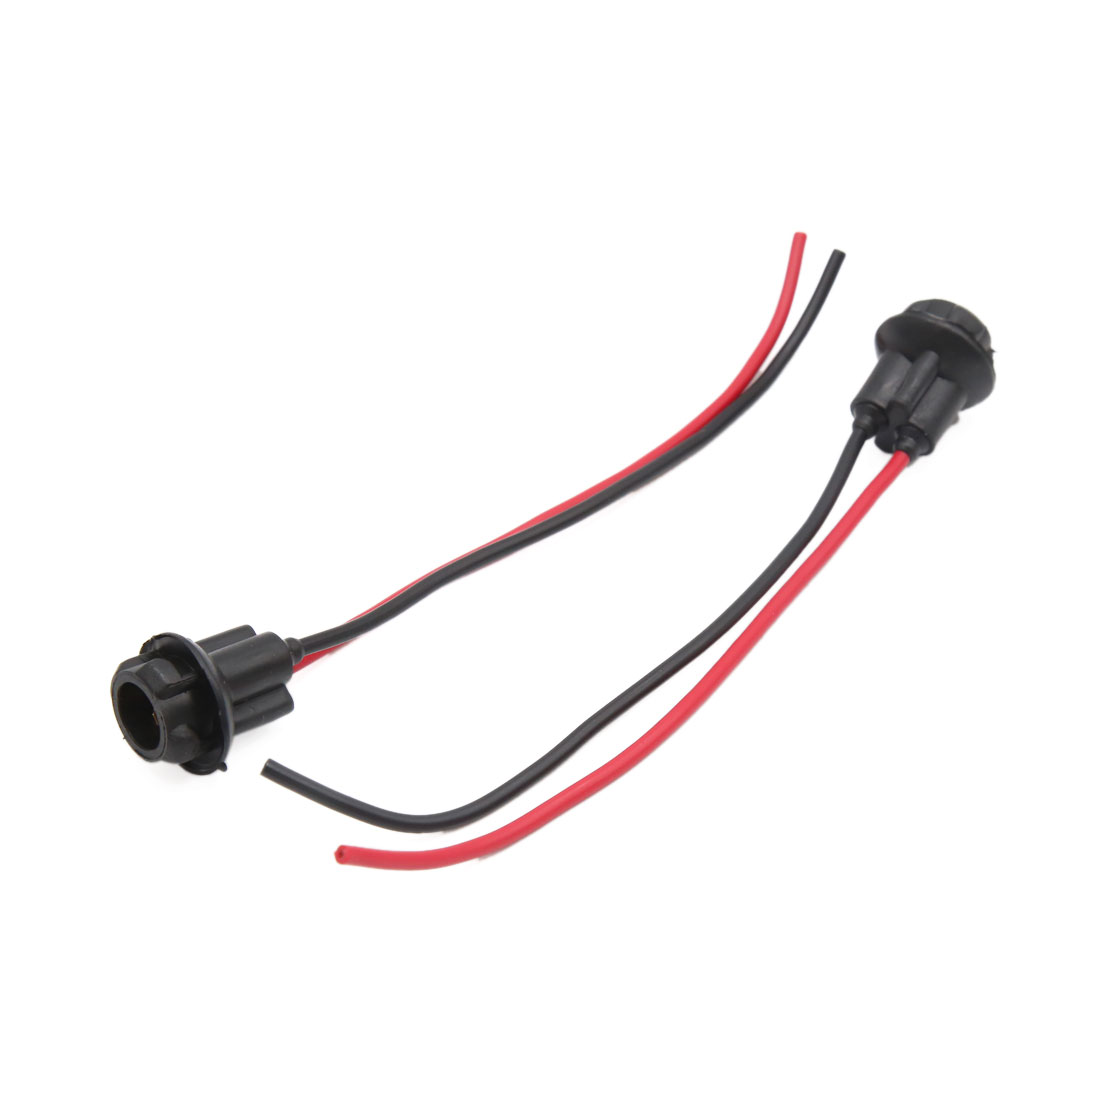 2pcs Black 2-wires T10 Brake Signal Light Bulb Harness Socket Connector for Car